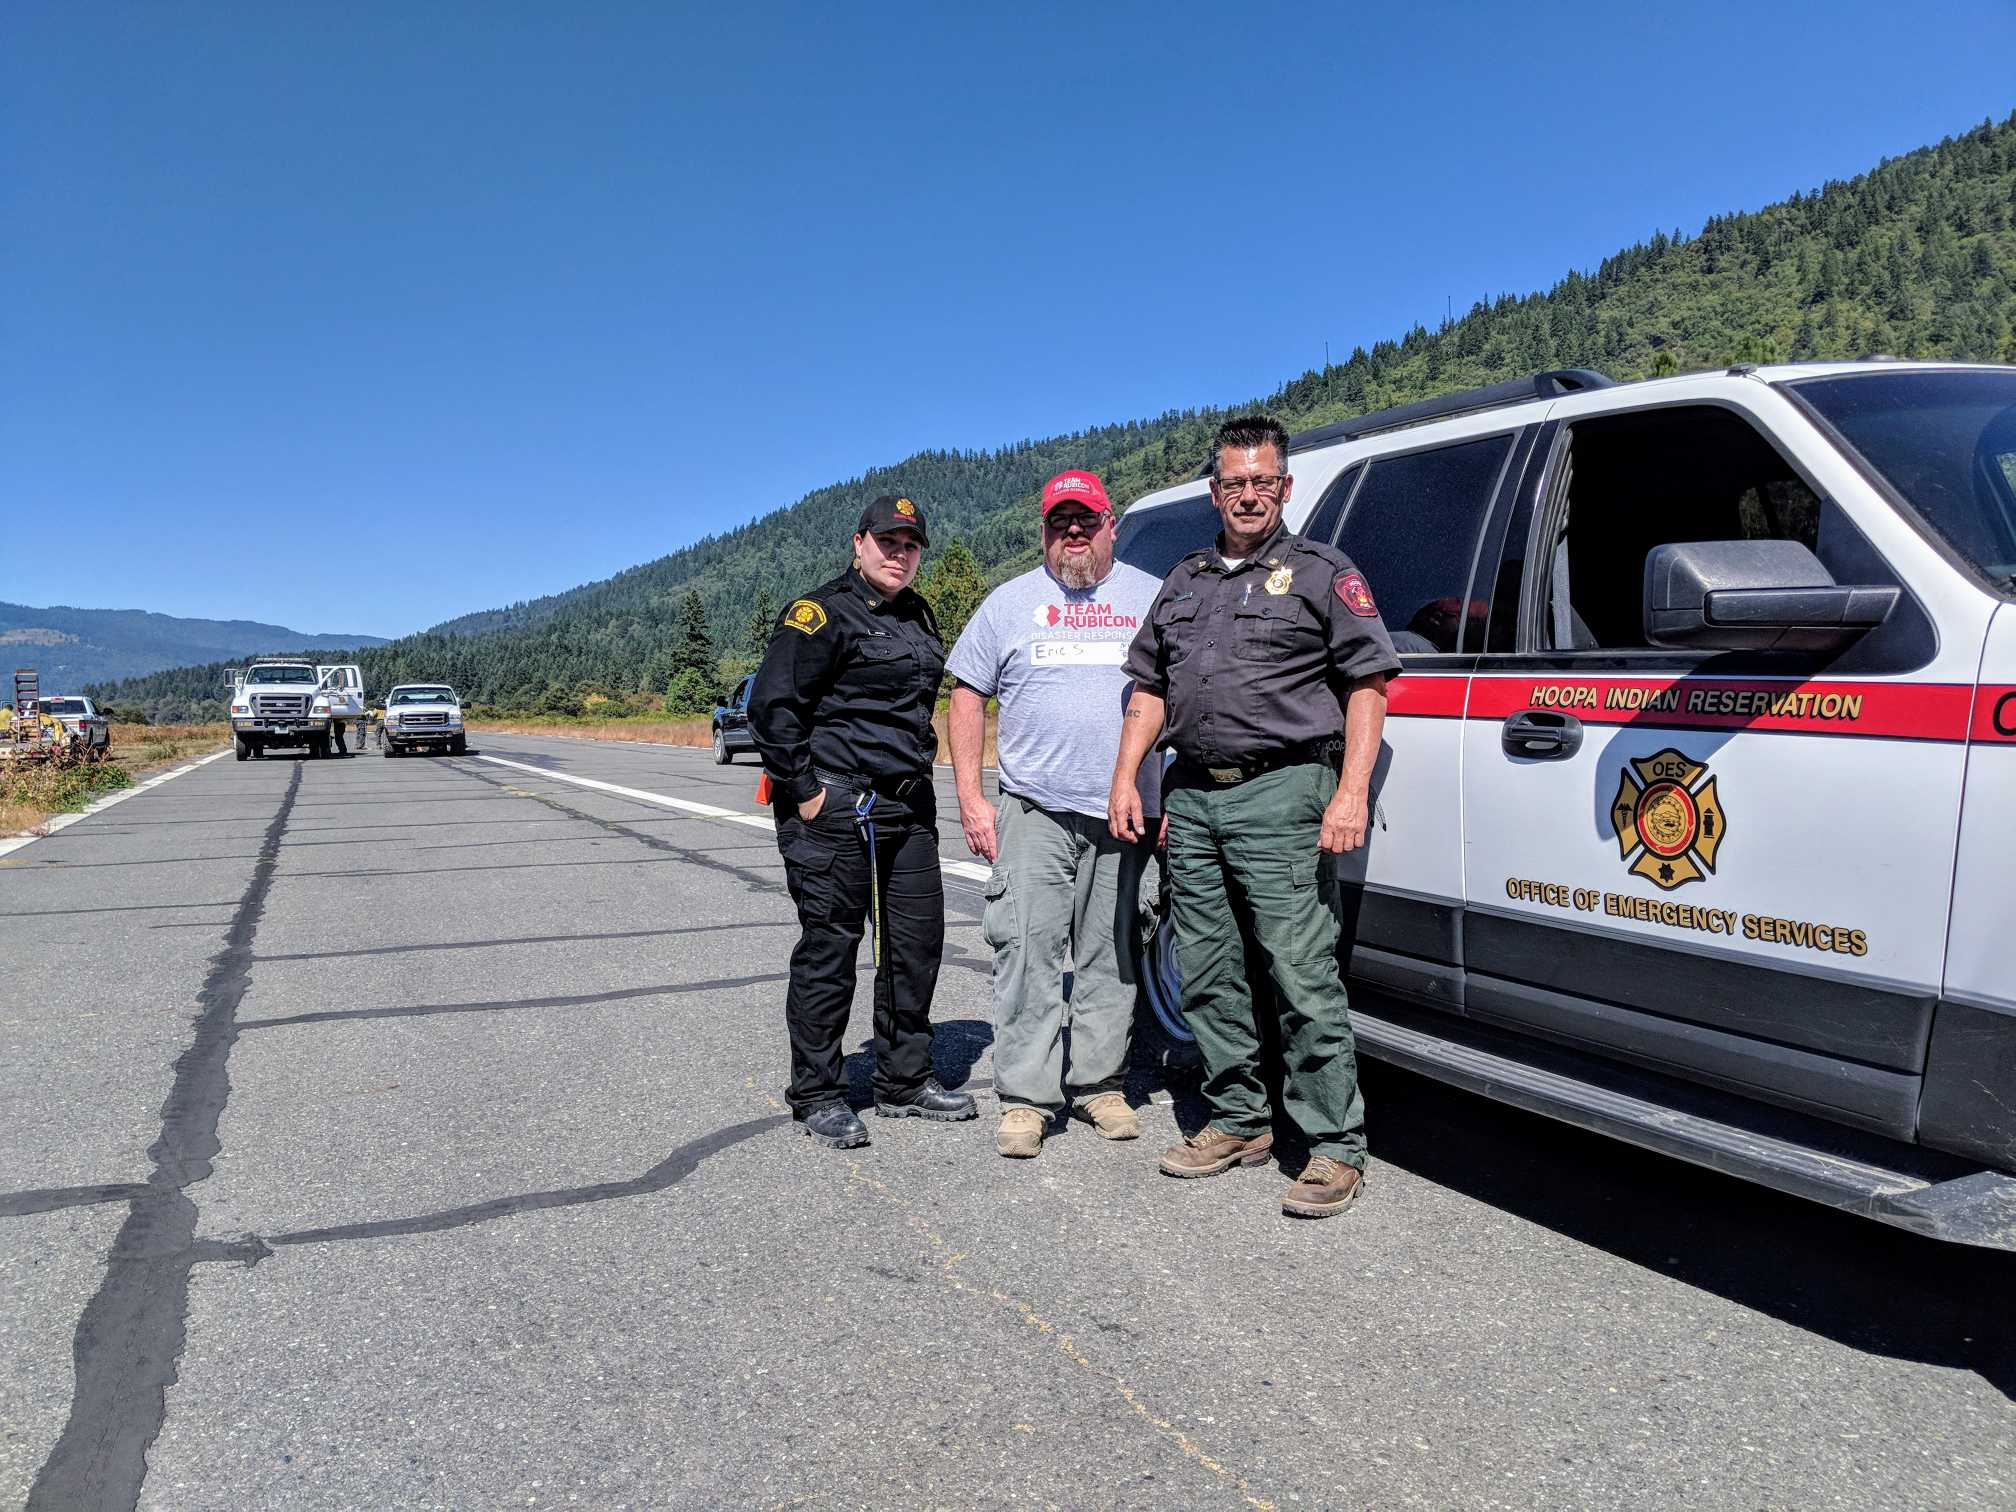 Hoopa Fire Department and Office of Emergency Services collaborating alongside Team Rubicon